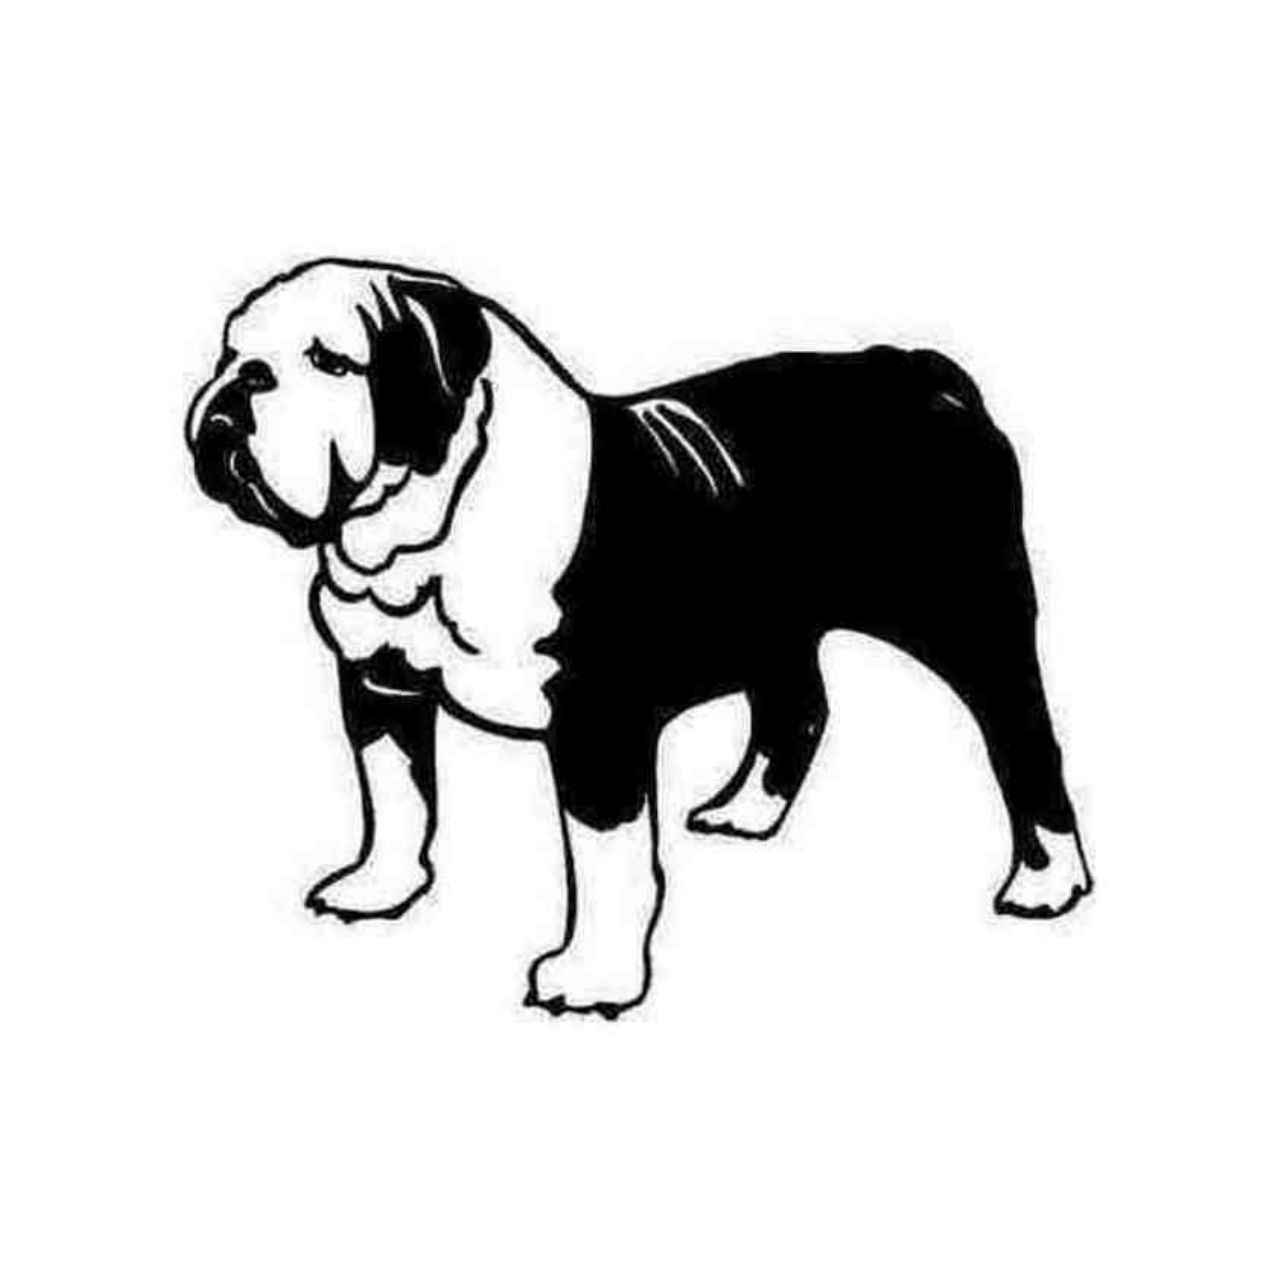 1280x1280 Bulldog Dog Detailed Silhouette Decal Sticker